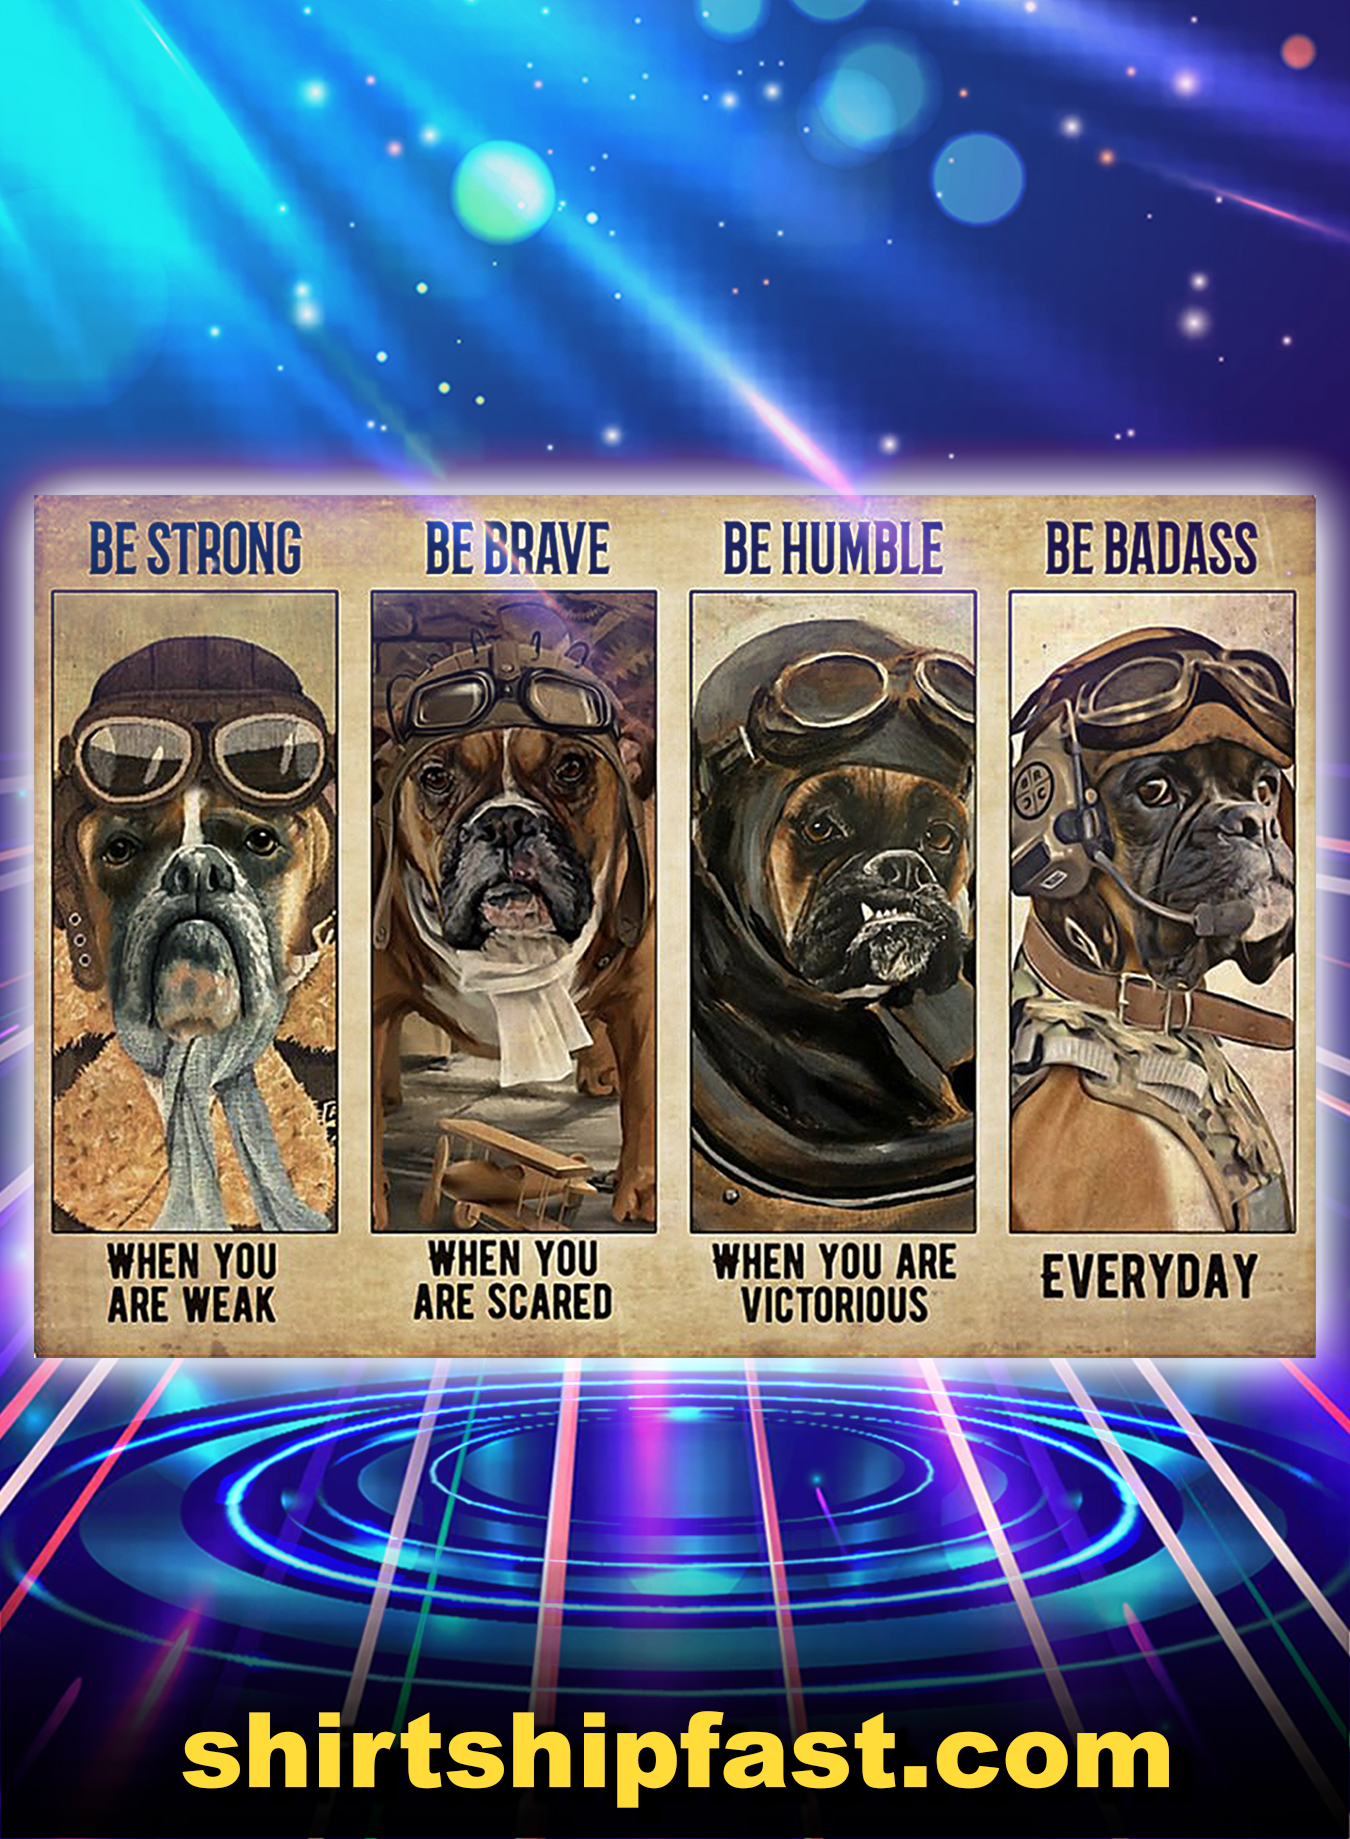 BOXER PILOT BE STRONG BE BRAVE BE HUMBLE BE BADASS POSTER - A3